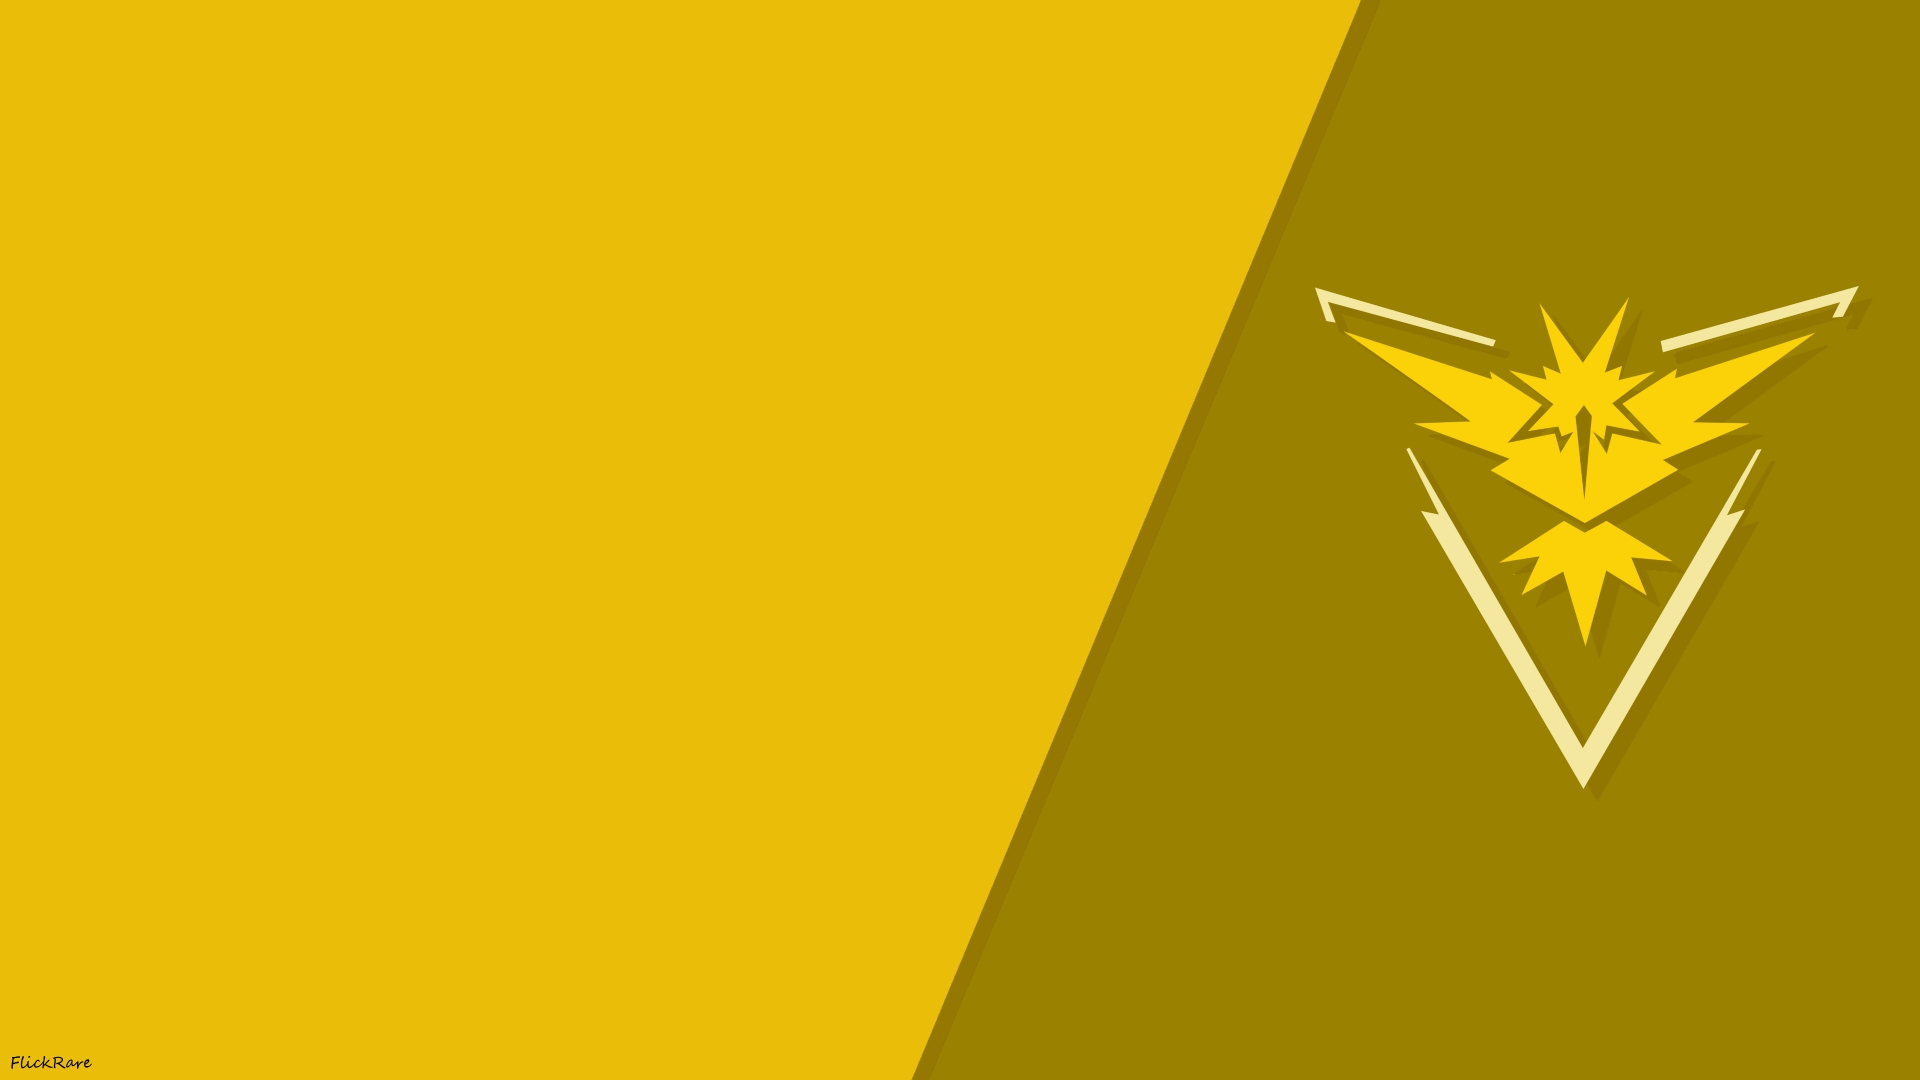 Pokemon go simple team instinct wallpaper by flickrare on for Going minimalist